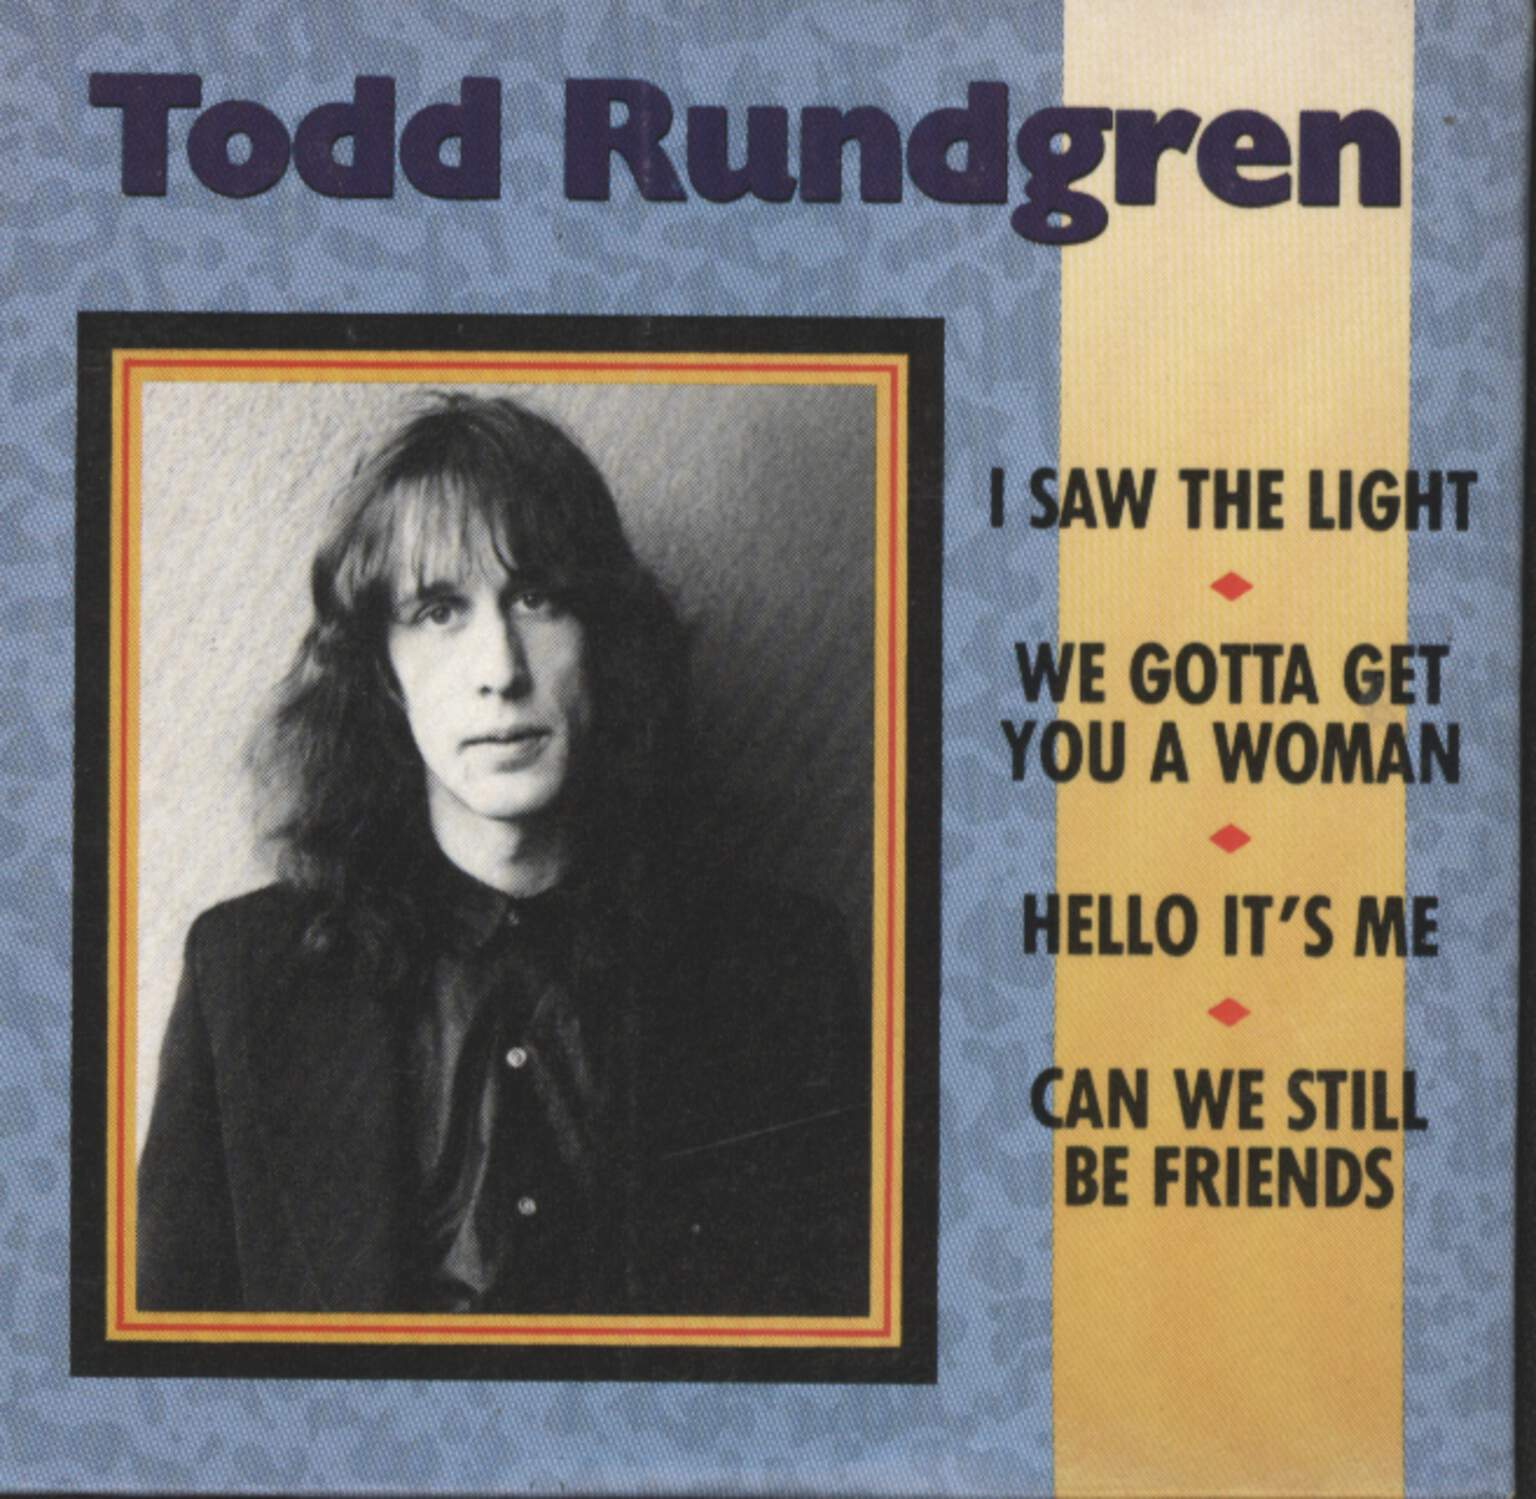 "Todd Rundgren: Lil' Bit Of Gold, 3"" CD"